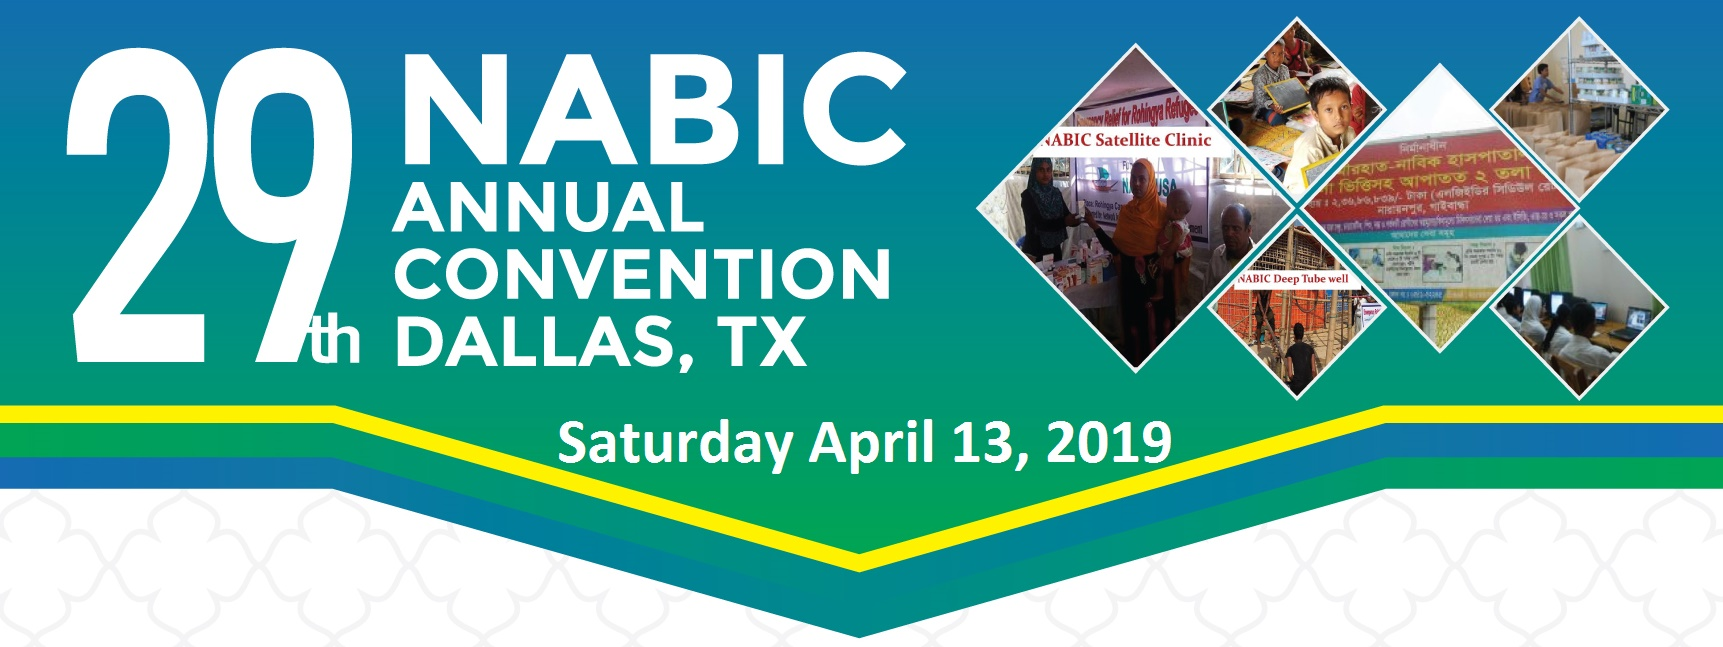 NABIC 28th Annual Convention – Saturday, April 13, 2019